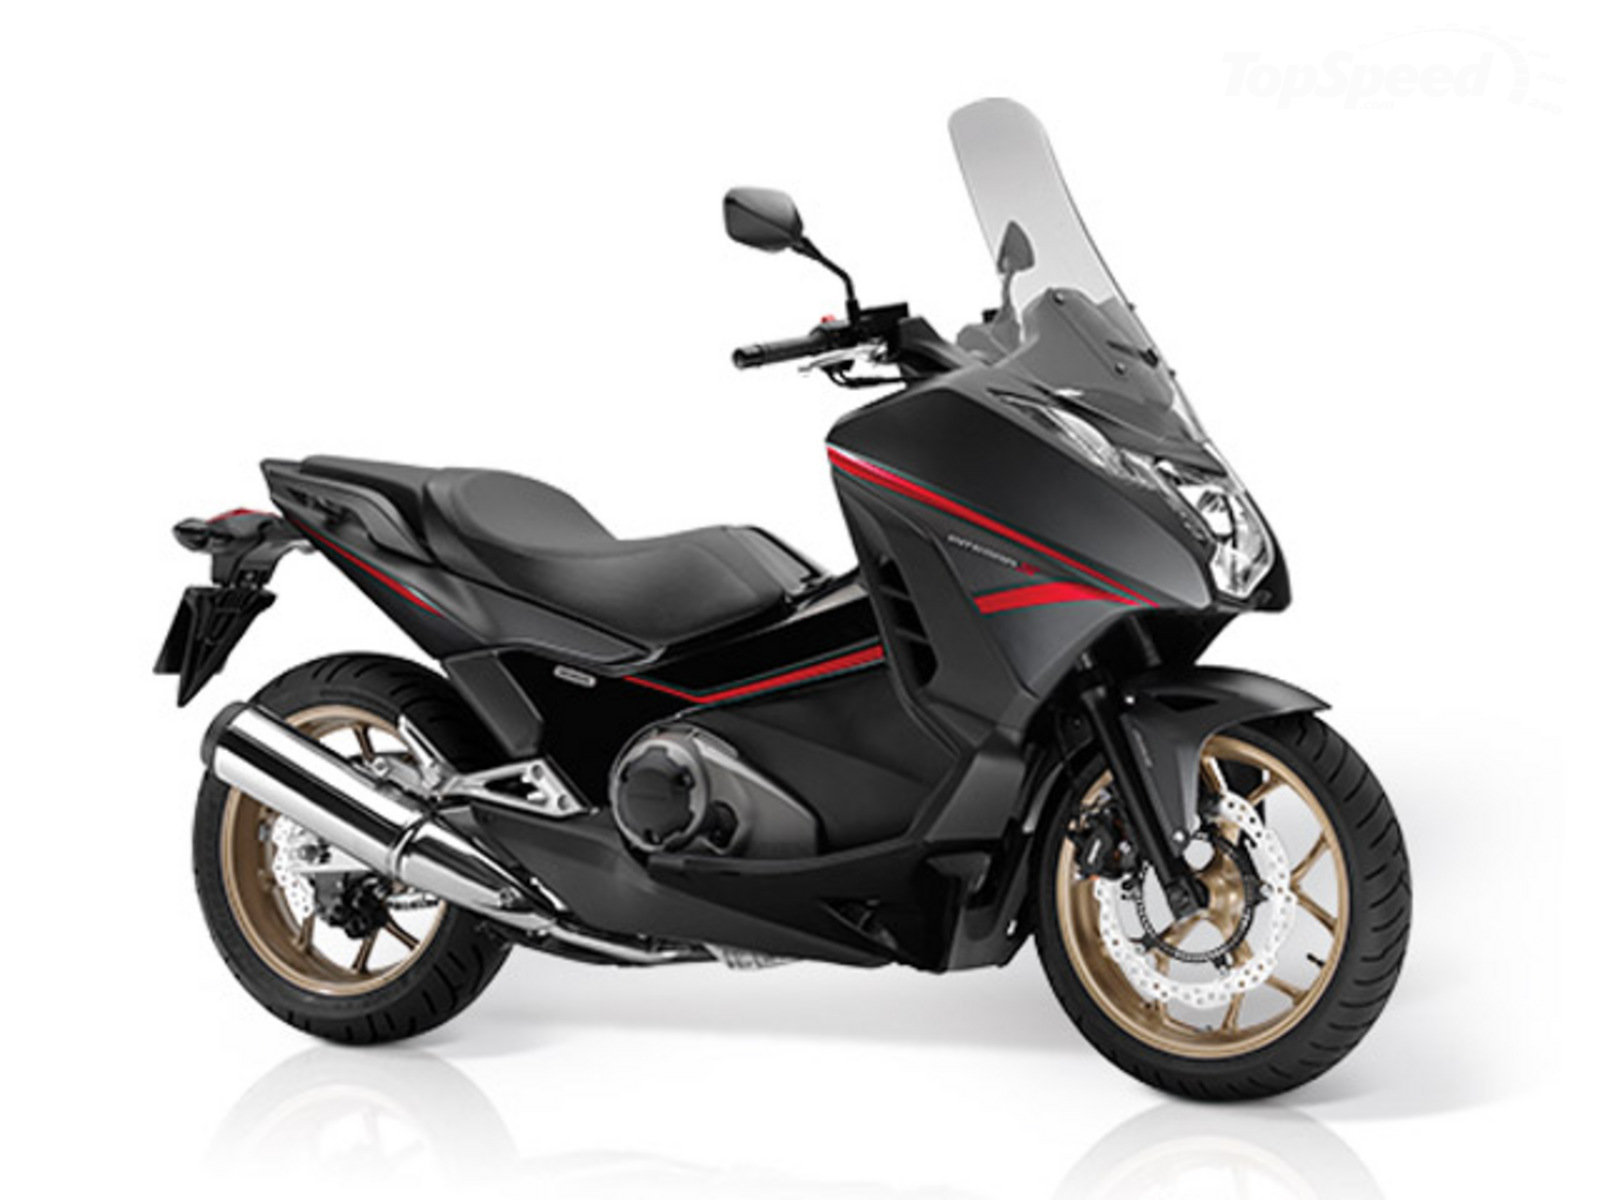 2014 honda nc750 integra review gallery top speed. Black Bedroom Furniture Sets. Home Design Ideas